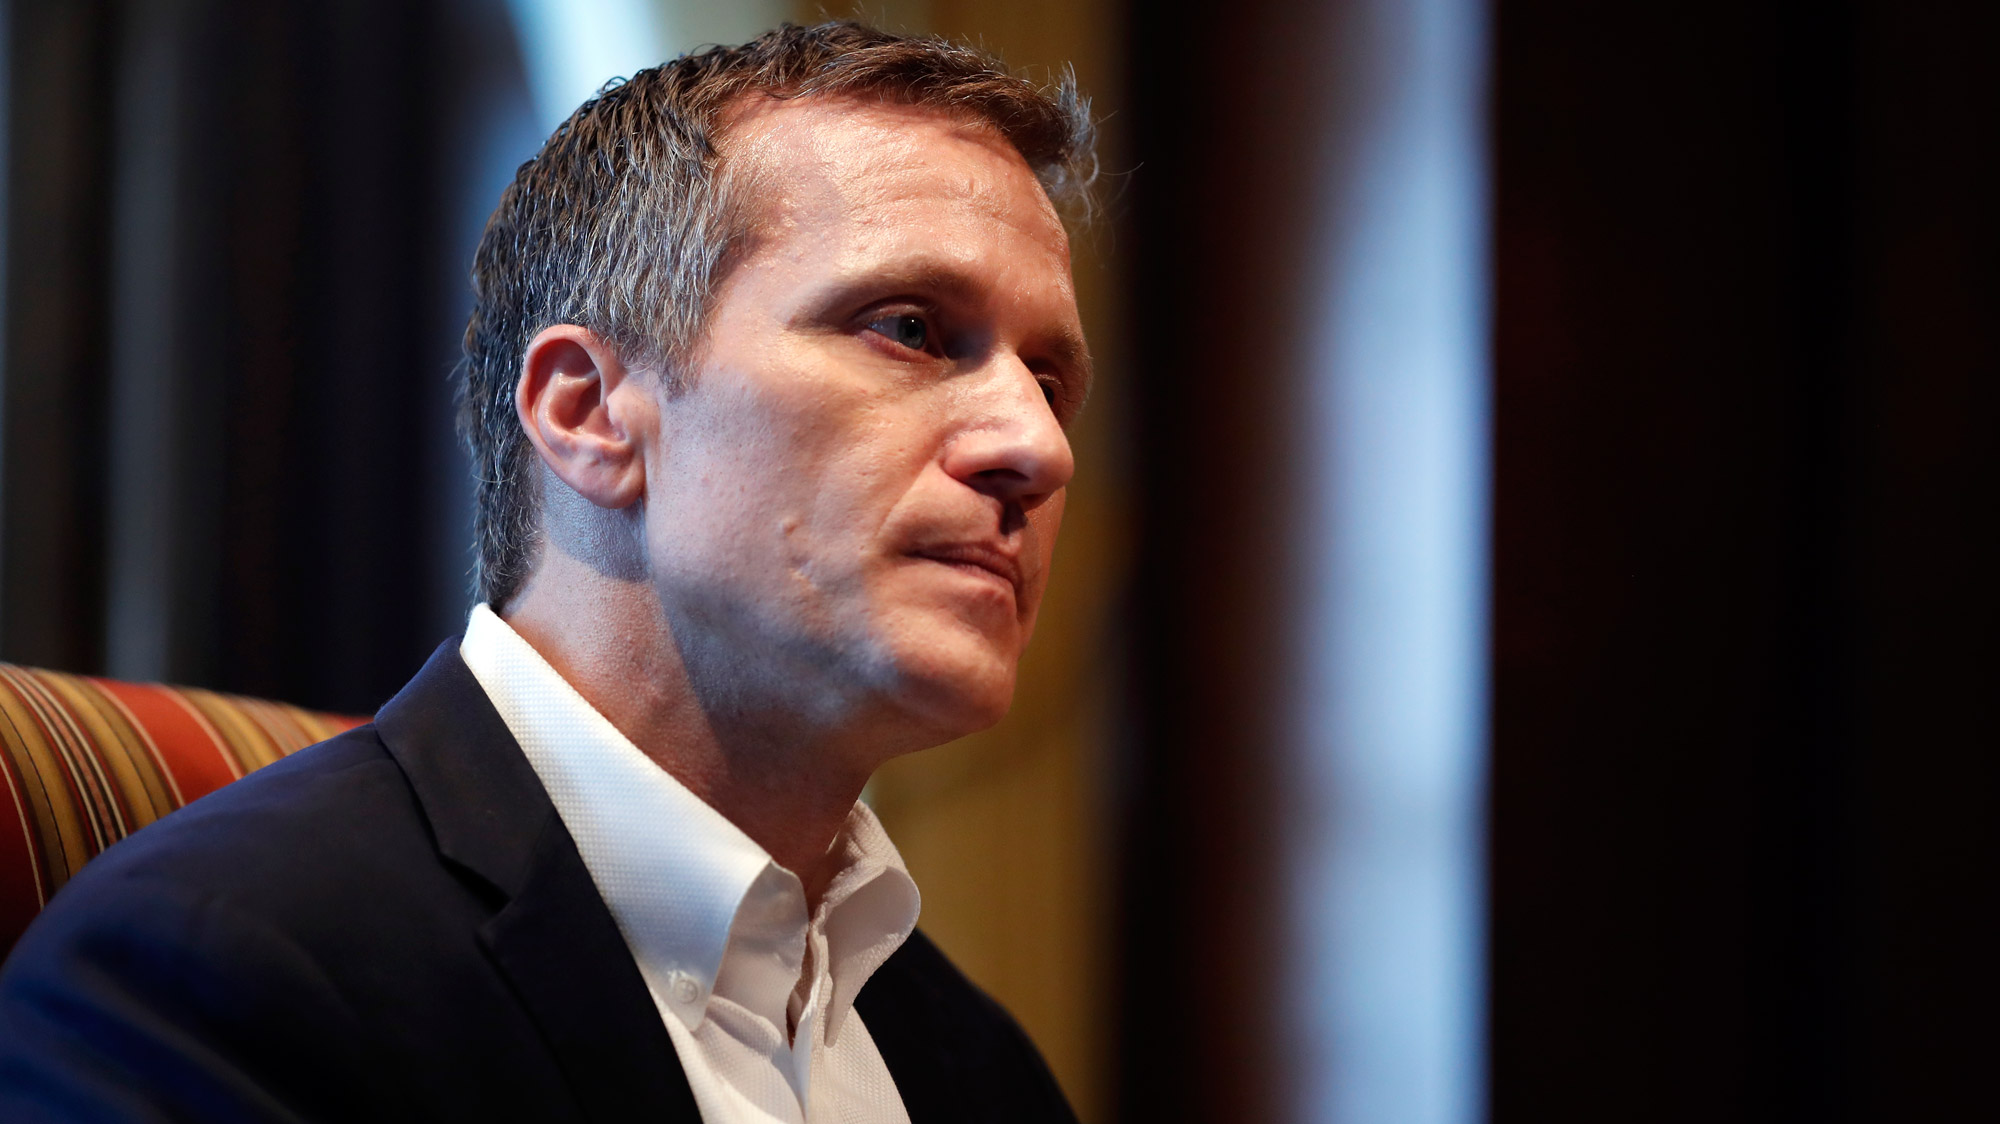 Missouri Gov. Eric Greitens indicted on charges related to affair